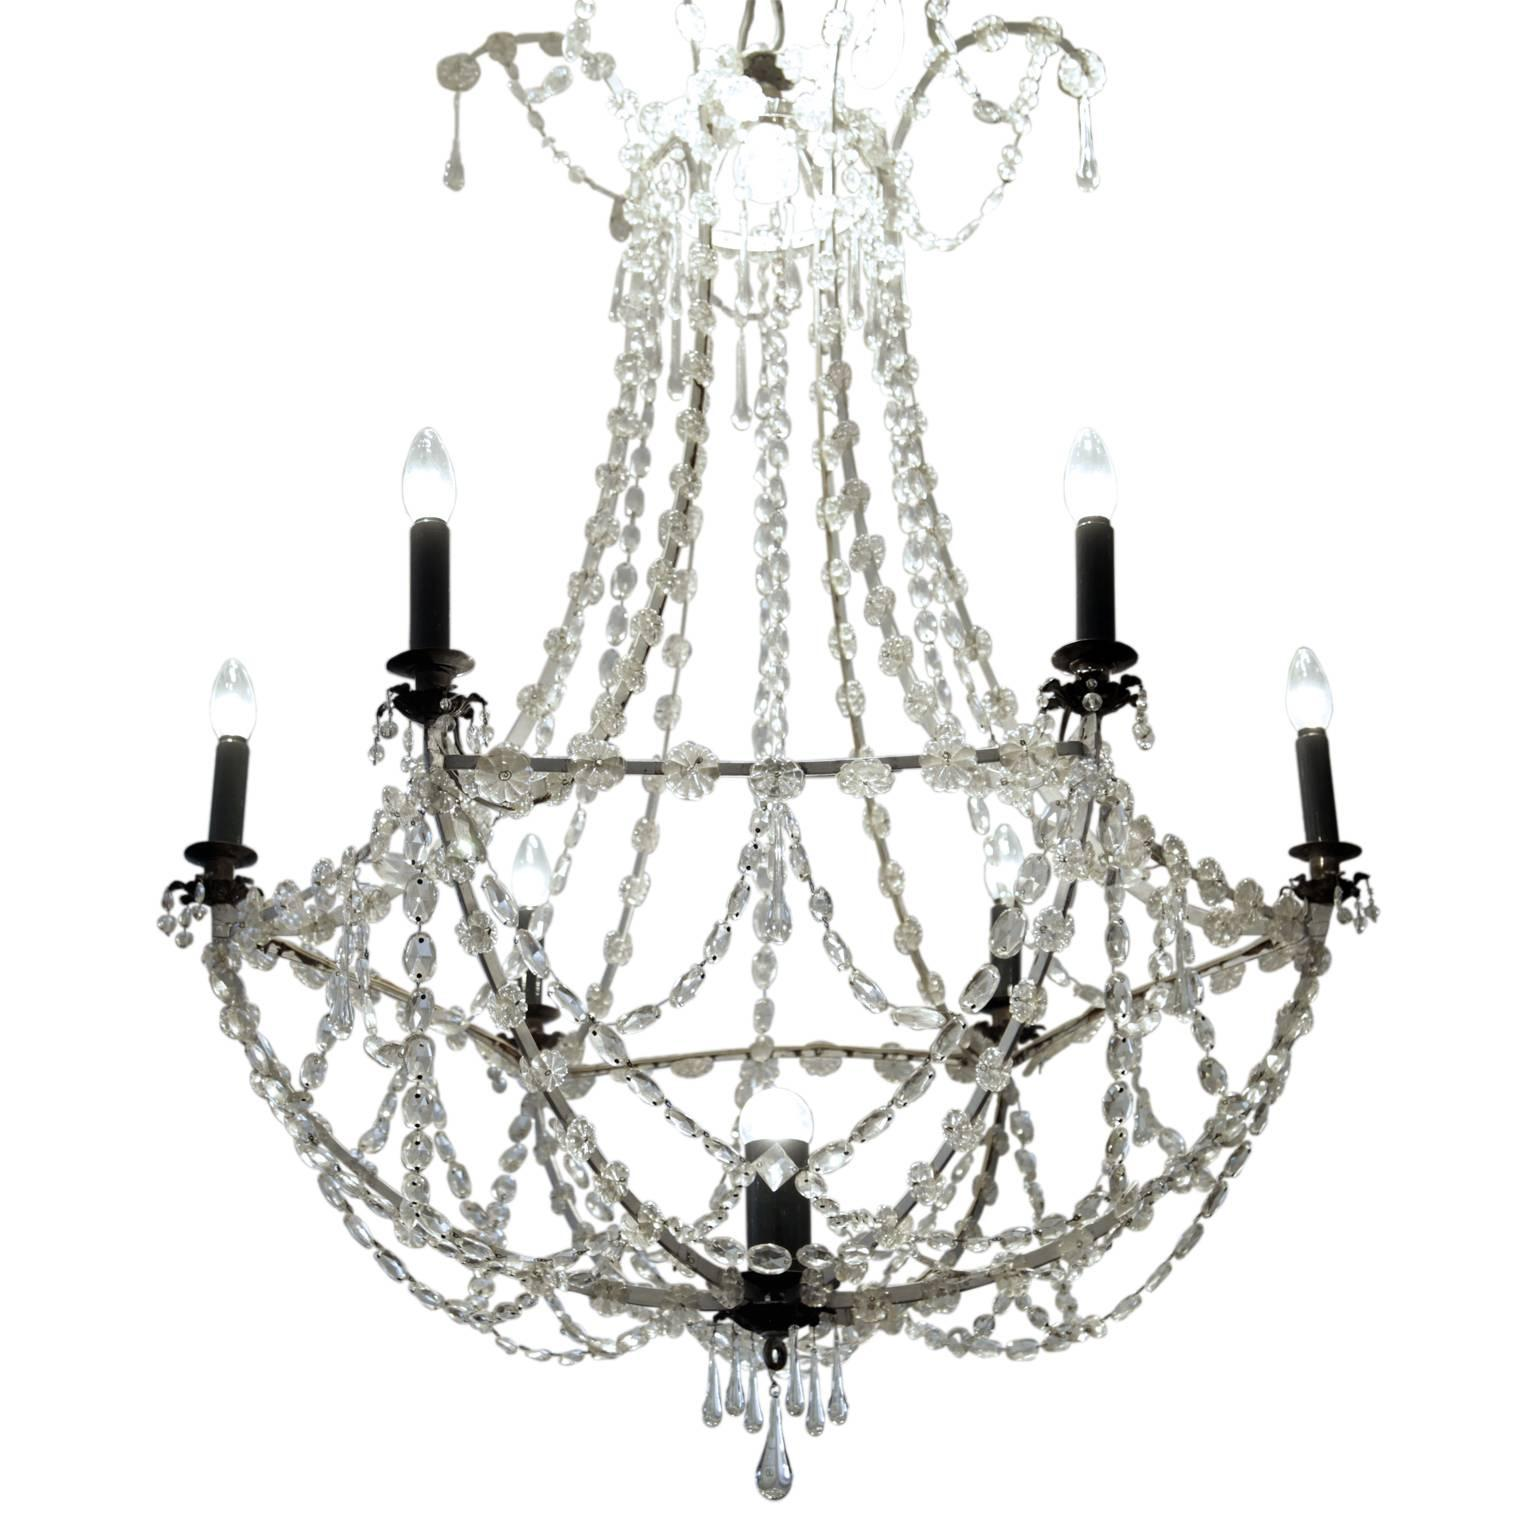 Seven-Light Chandelier, First Half of the 19th Century